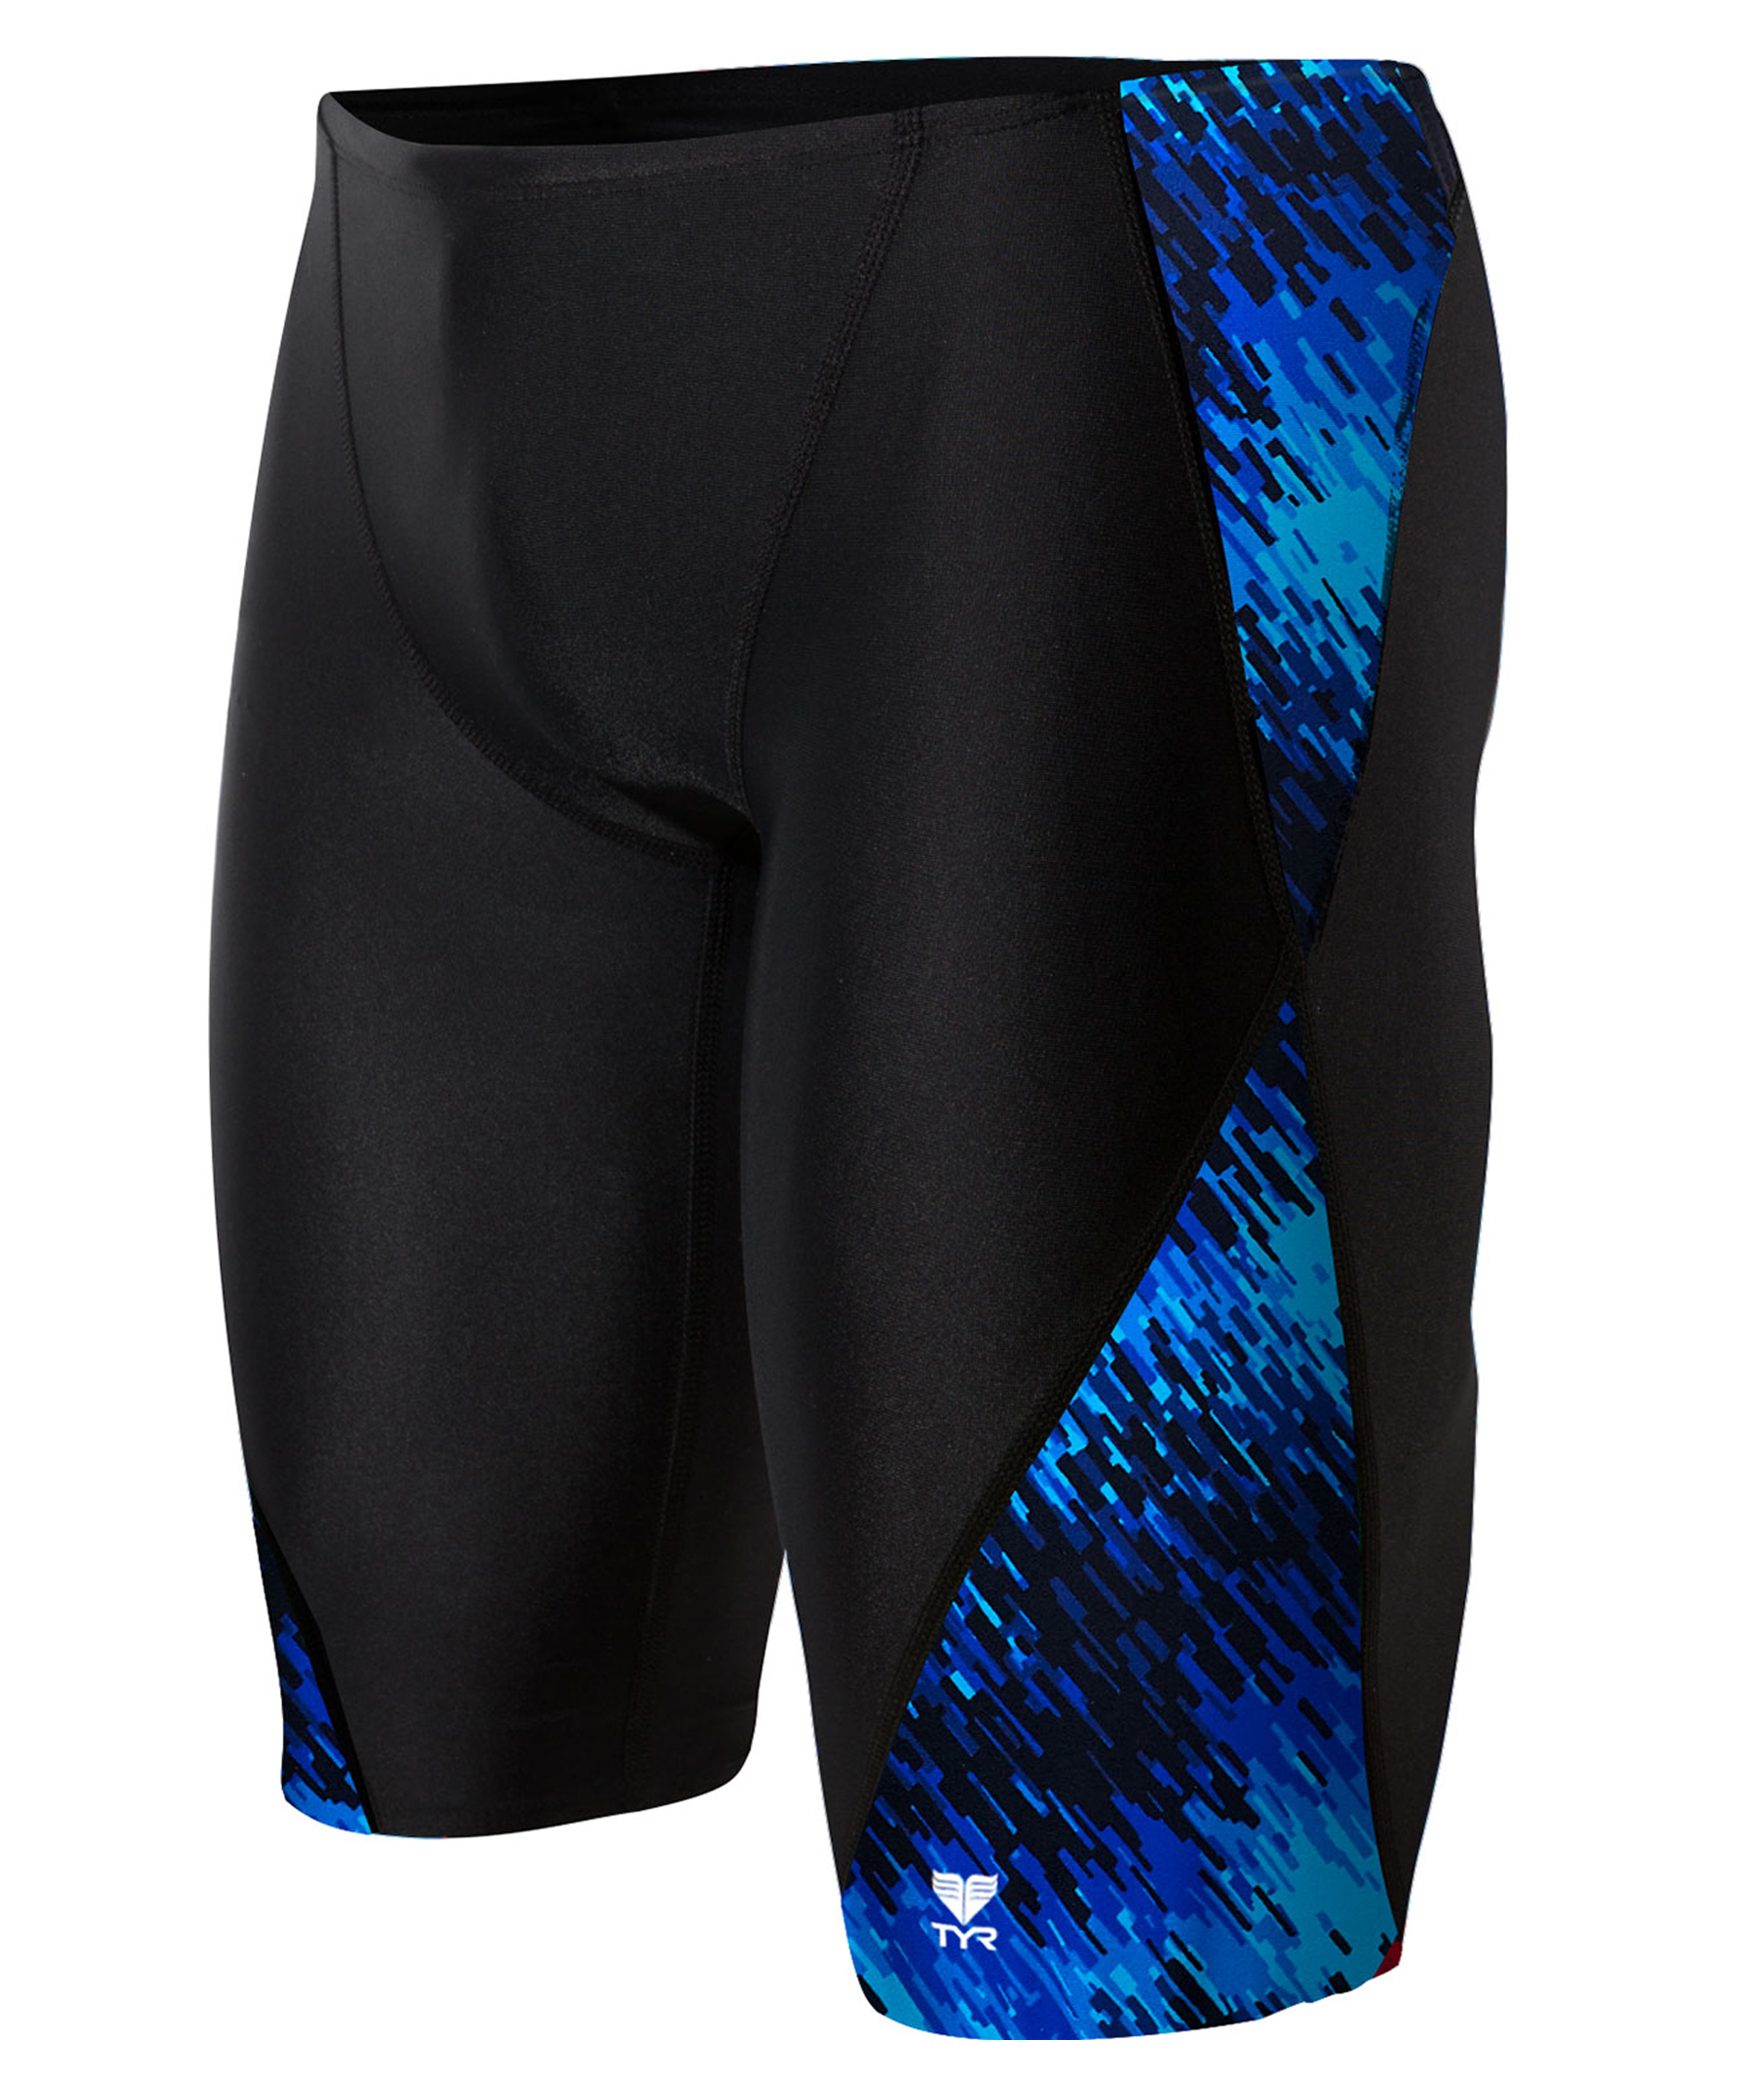 TYR Boys Perseus Performance Training Jammer